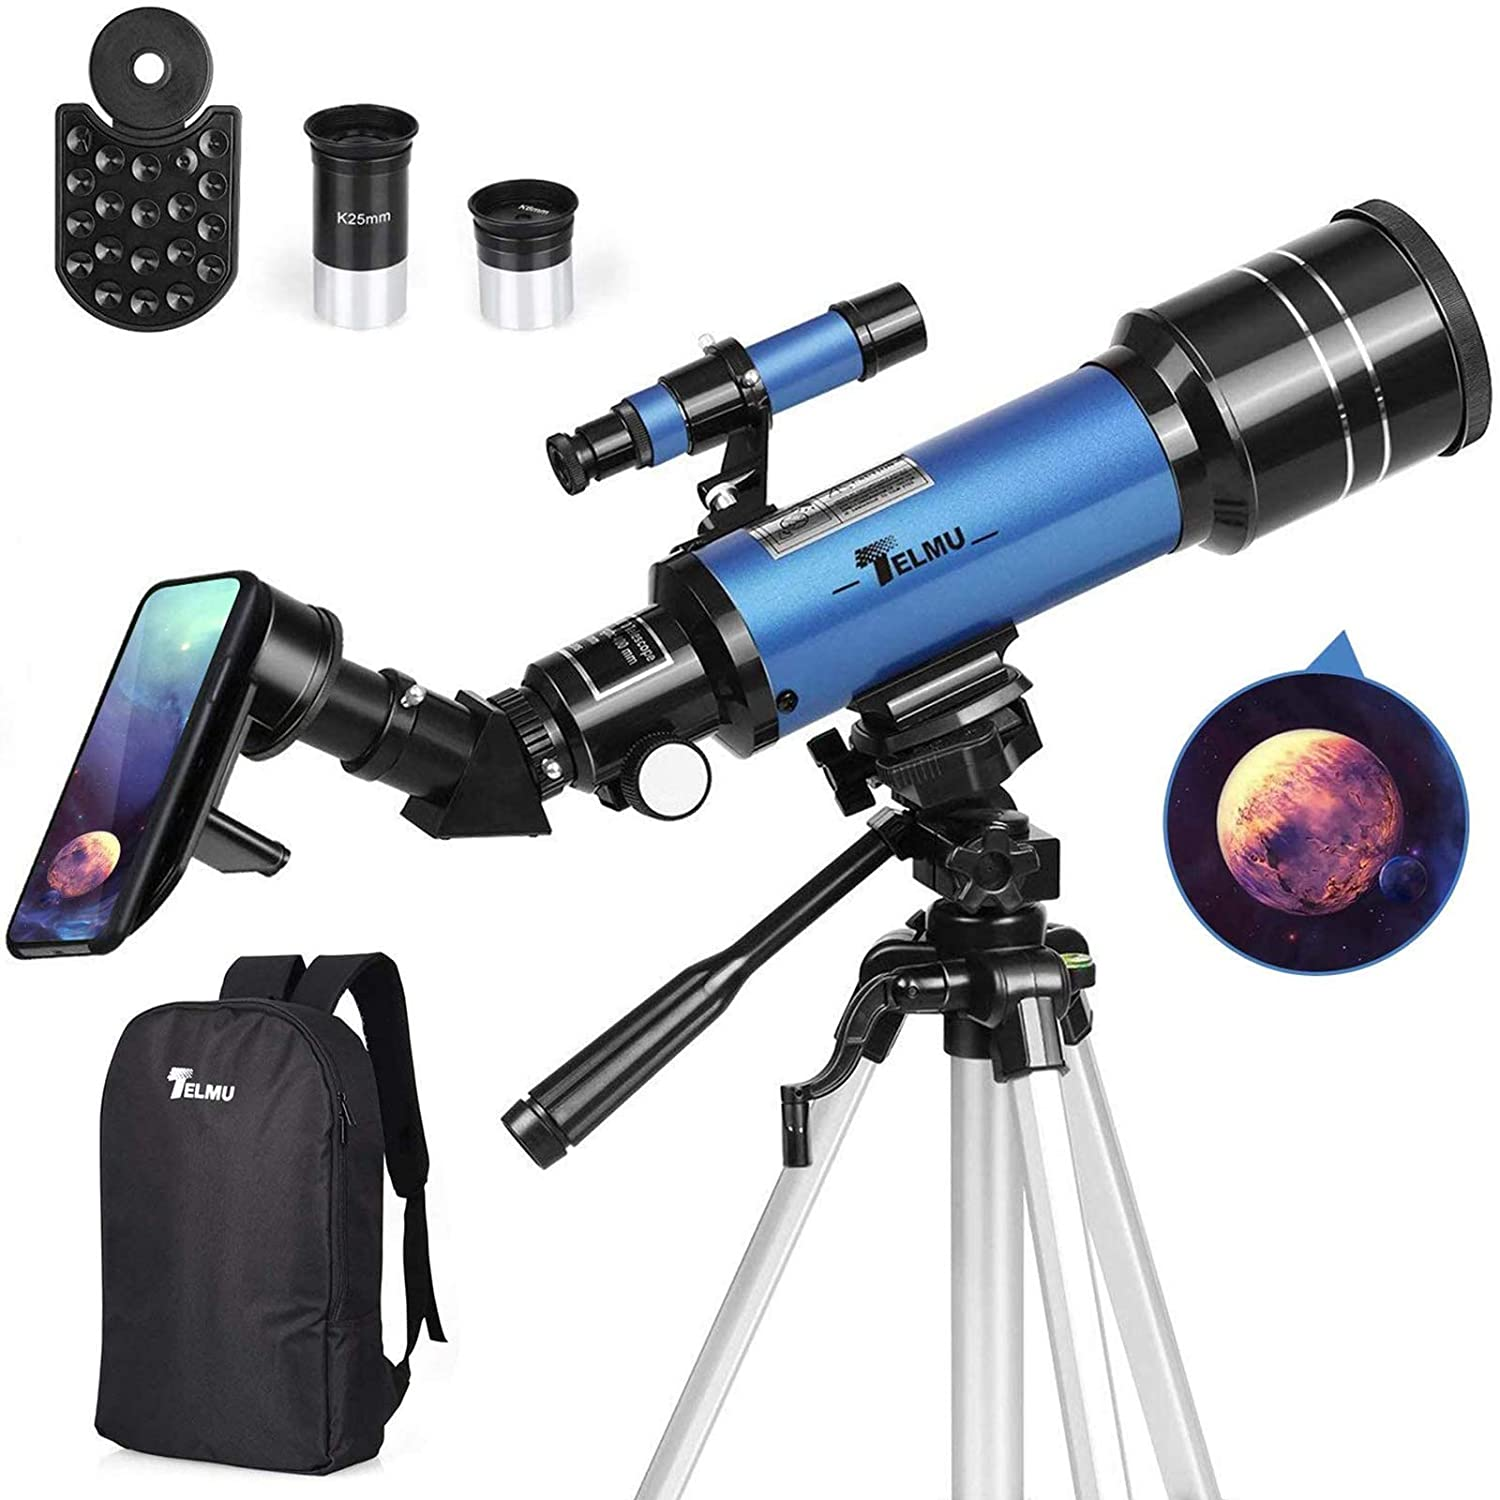 Review of - TELMU Telescope, 70mm Aperture, 400mm AZ Mount Astronomical Refracting